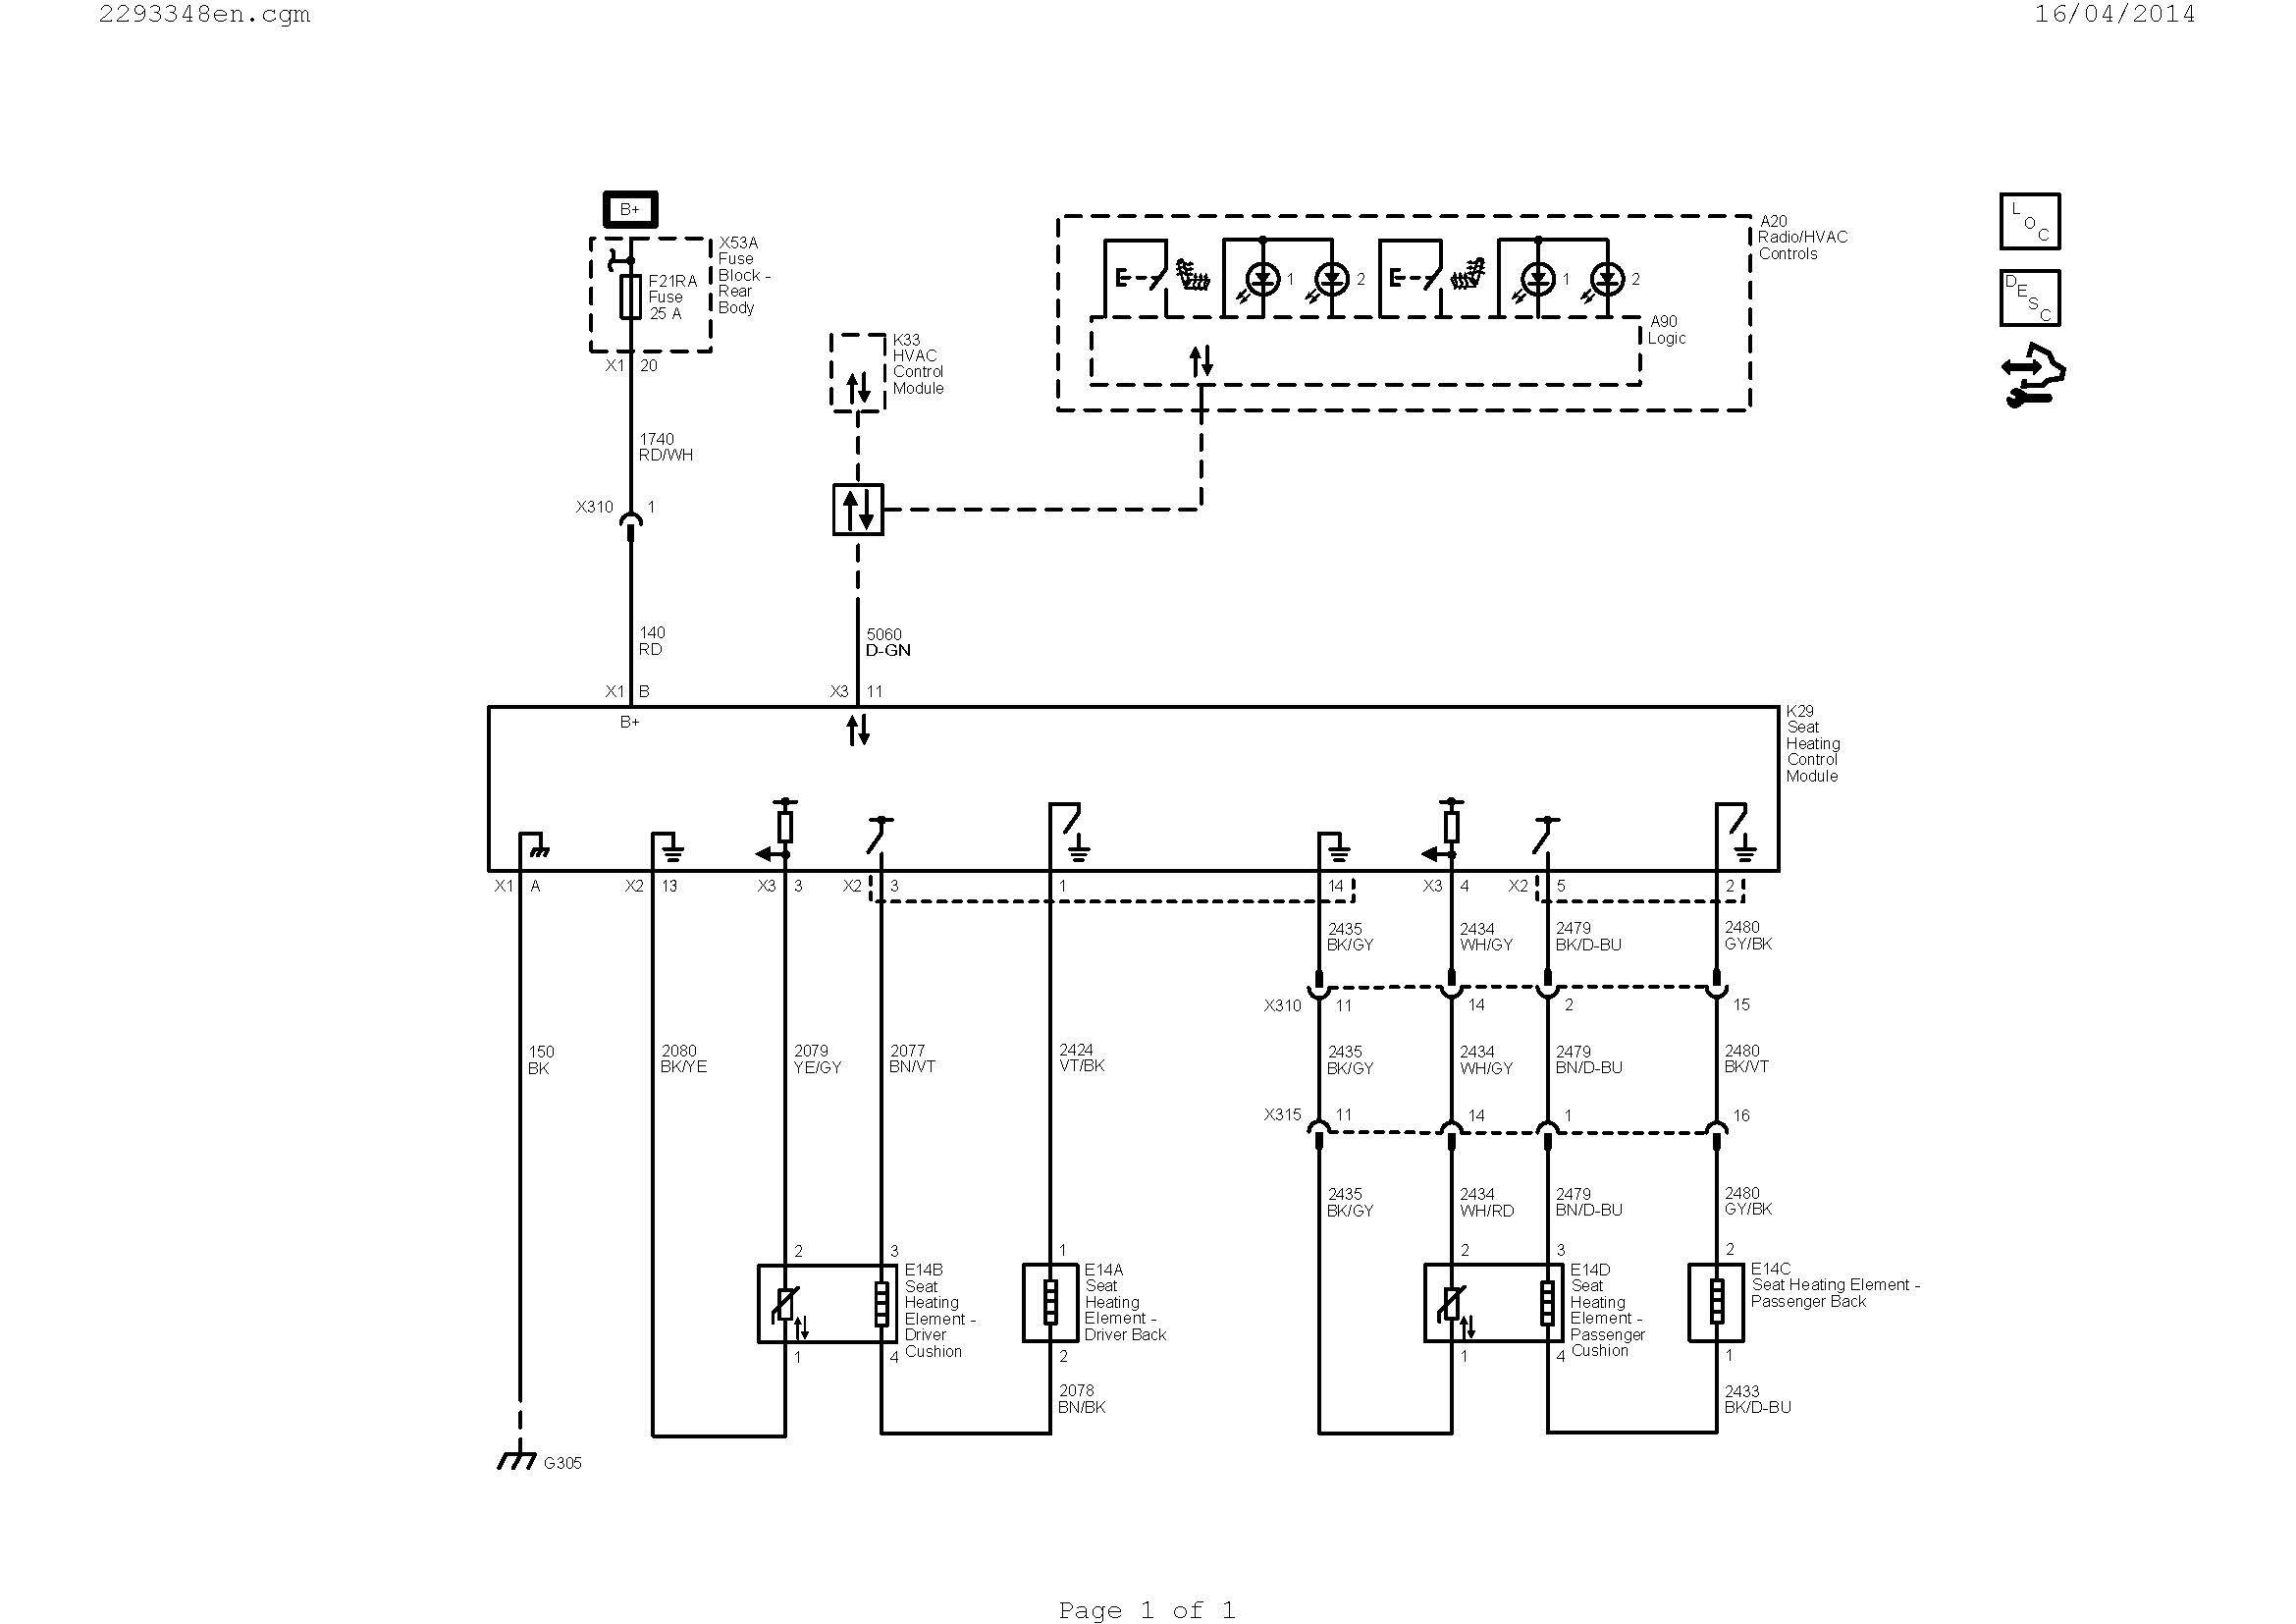 4 wire thermostat wiring diagram Collection-7 wire thermostat wiring diagram Download Wiring A Ac Thermostat Diagram New Wiring Diagram Ac 3-i